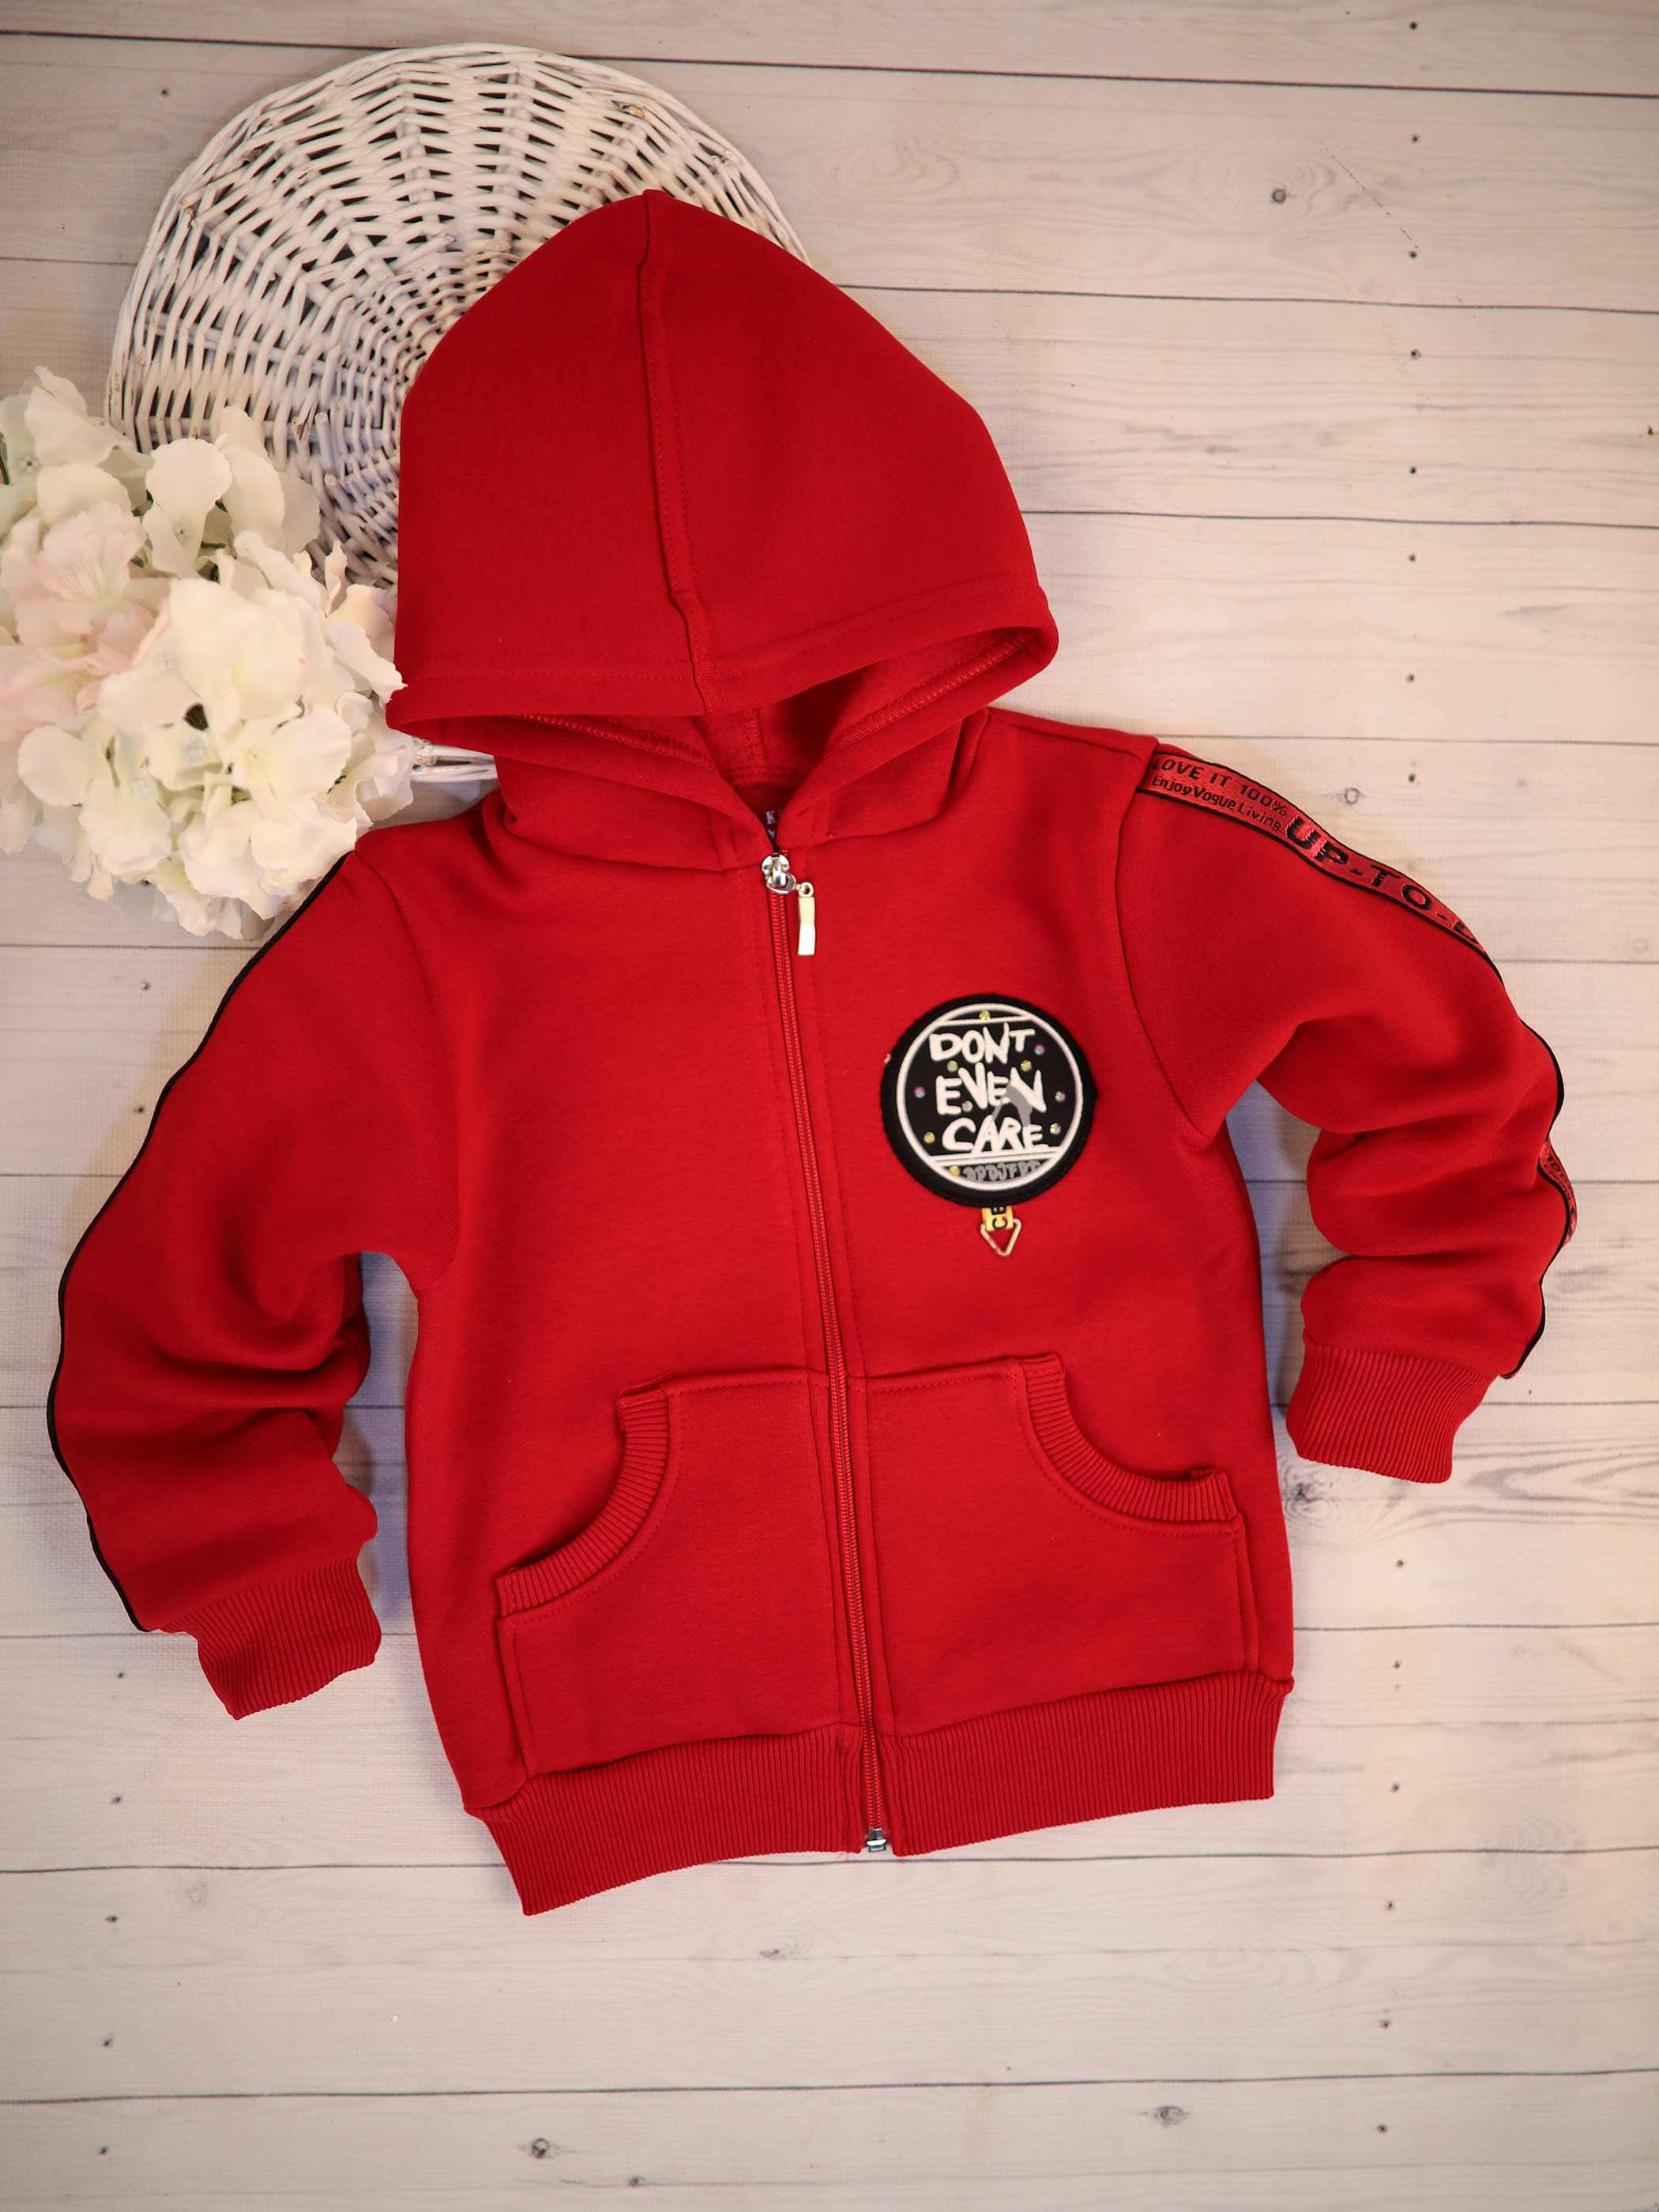 Hoodies Kids Spring Autumn Sweatshirts Fashion Kids Sweatshirts Clothes Baby Toddler Girls Coat Kids Clothes Boys Zipper Jacket